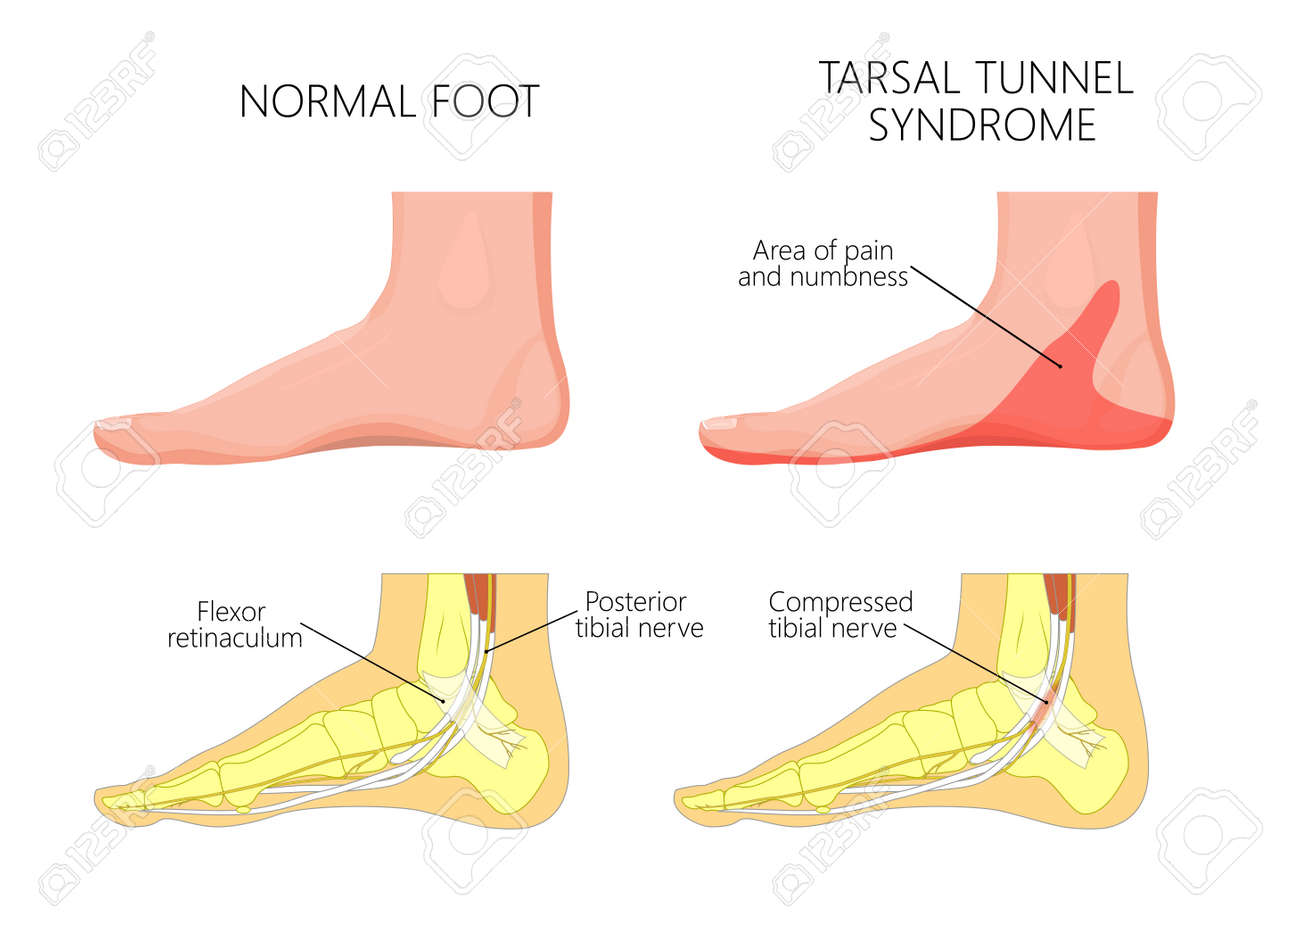 90919033 illustration of healthy human foot and medial ankle injury tarsal tunnel syndrome illustration of healthy human foot and medial ankle injury tarsal